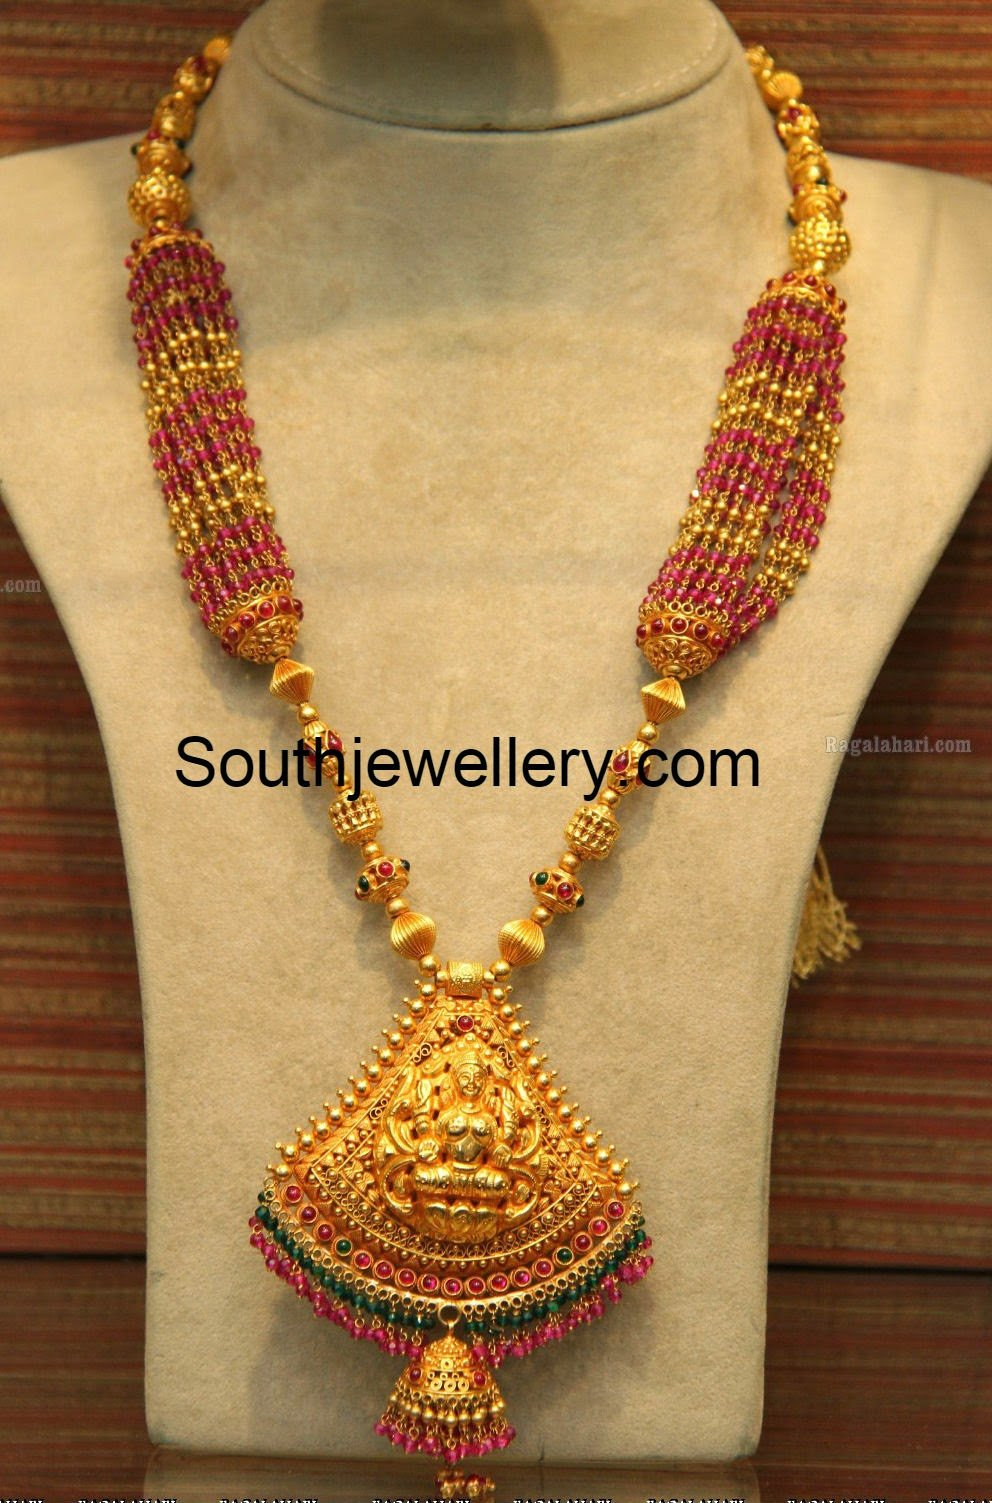 Ruby Beads Necklace With Lakshmi Pendant Indian